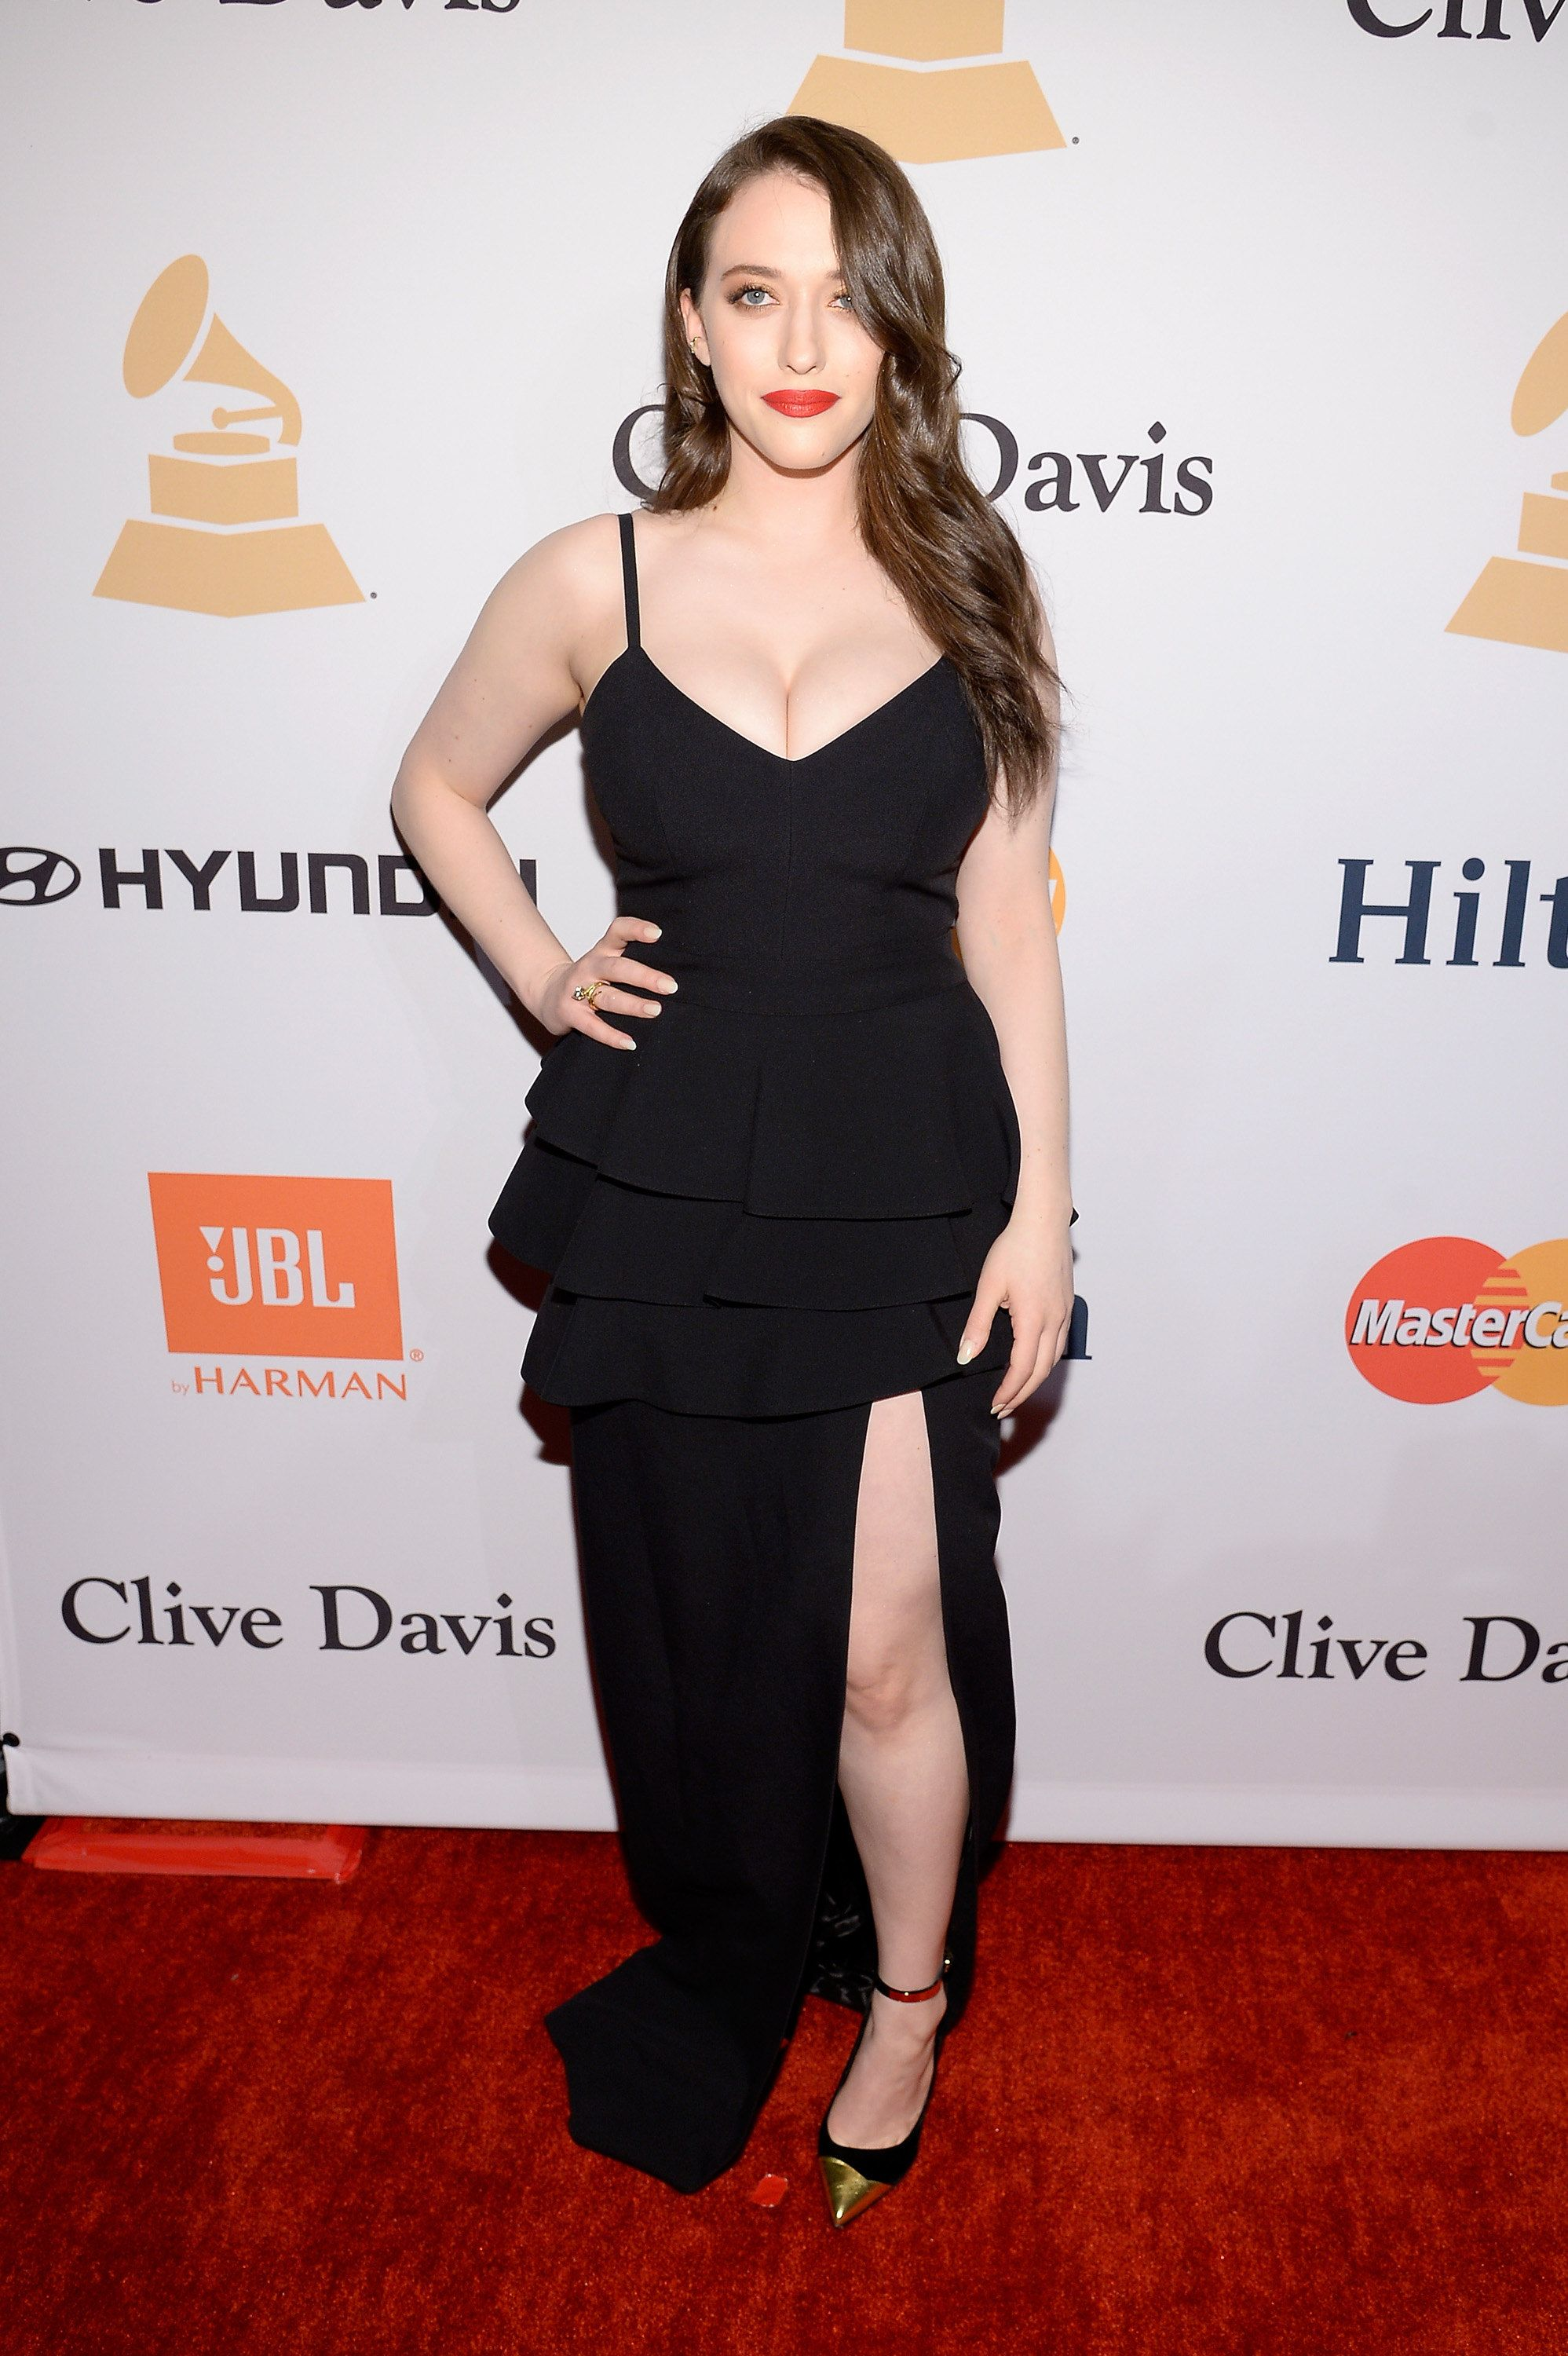 Kat Dennings 2016 Pre Grammy Gala And Salute To Industry Icons In Beverly Hills 14 February 2016 Kat Dennings Kat Dennings Pics Actresses [ 3000 x 1997 Pixel ]